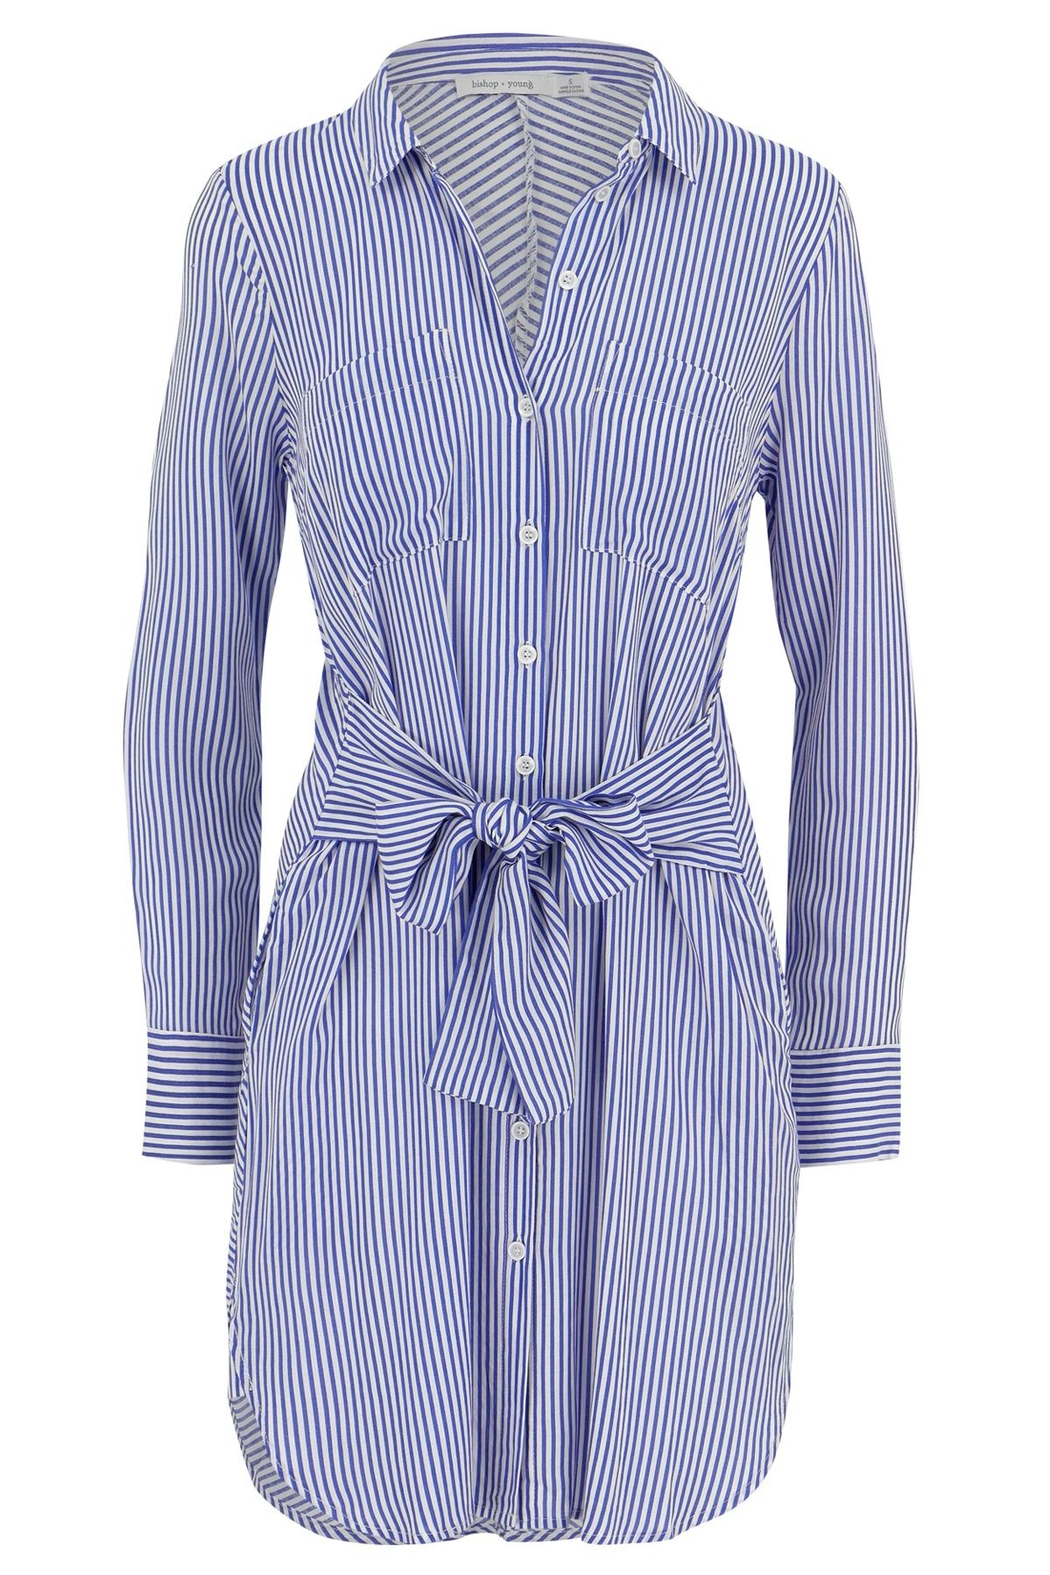 Bishop + Young Stripe Shift Dress - Main Image